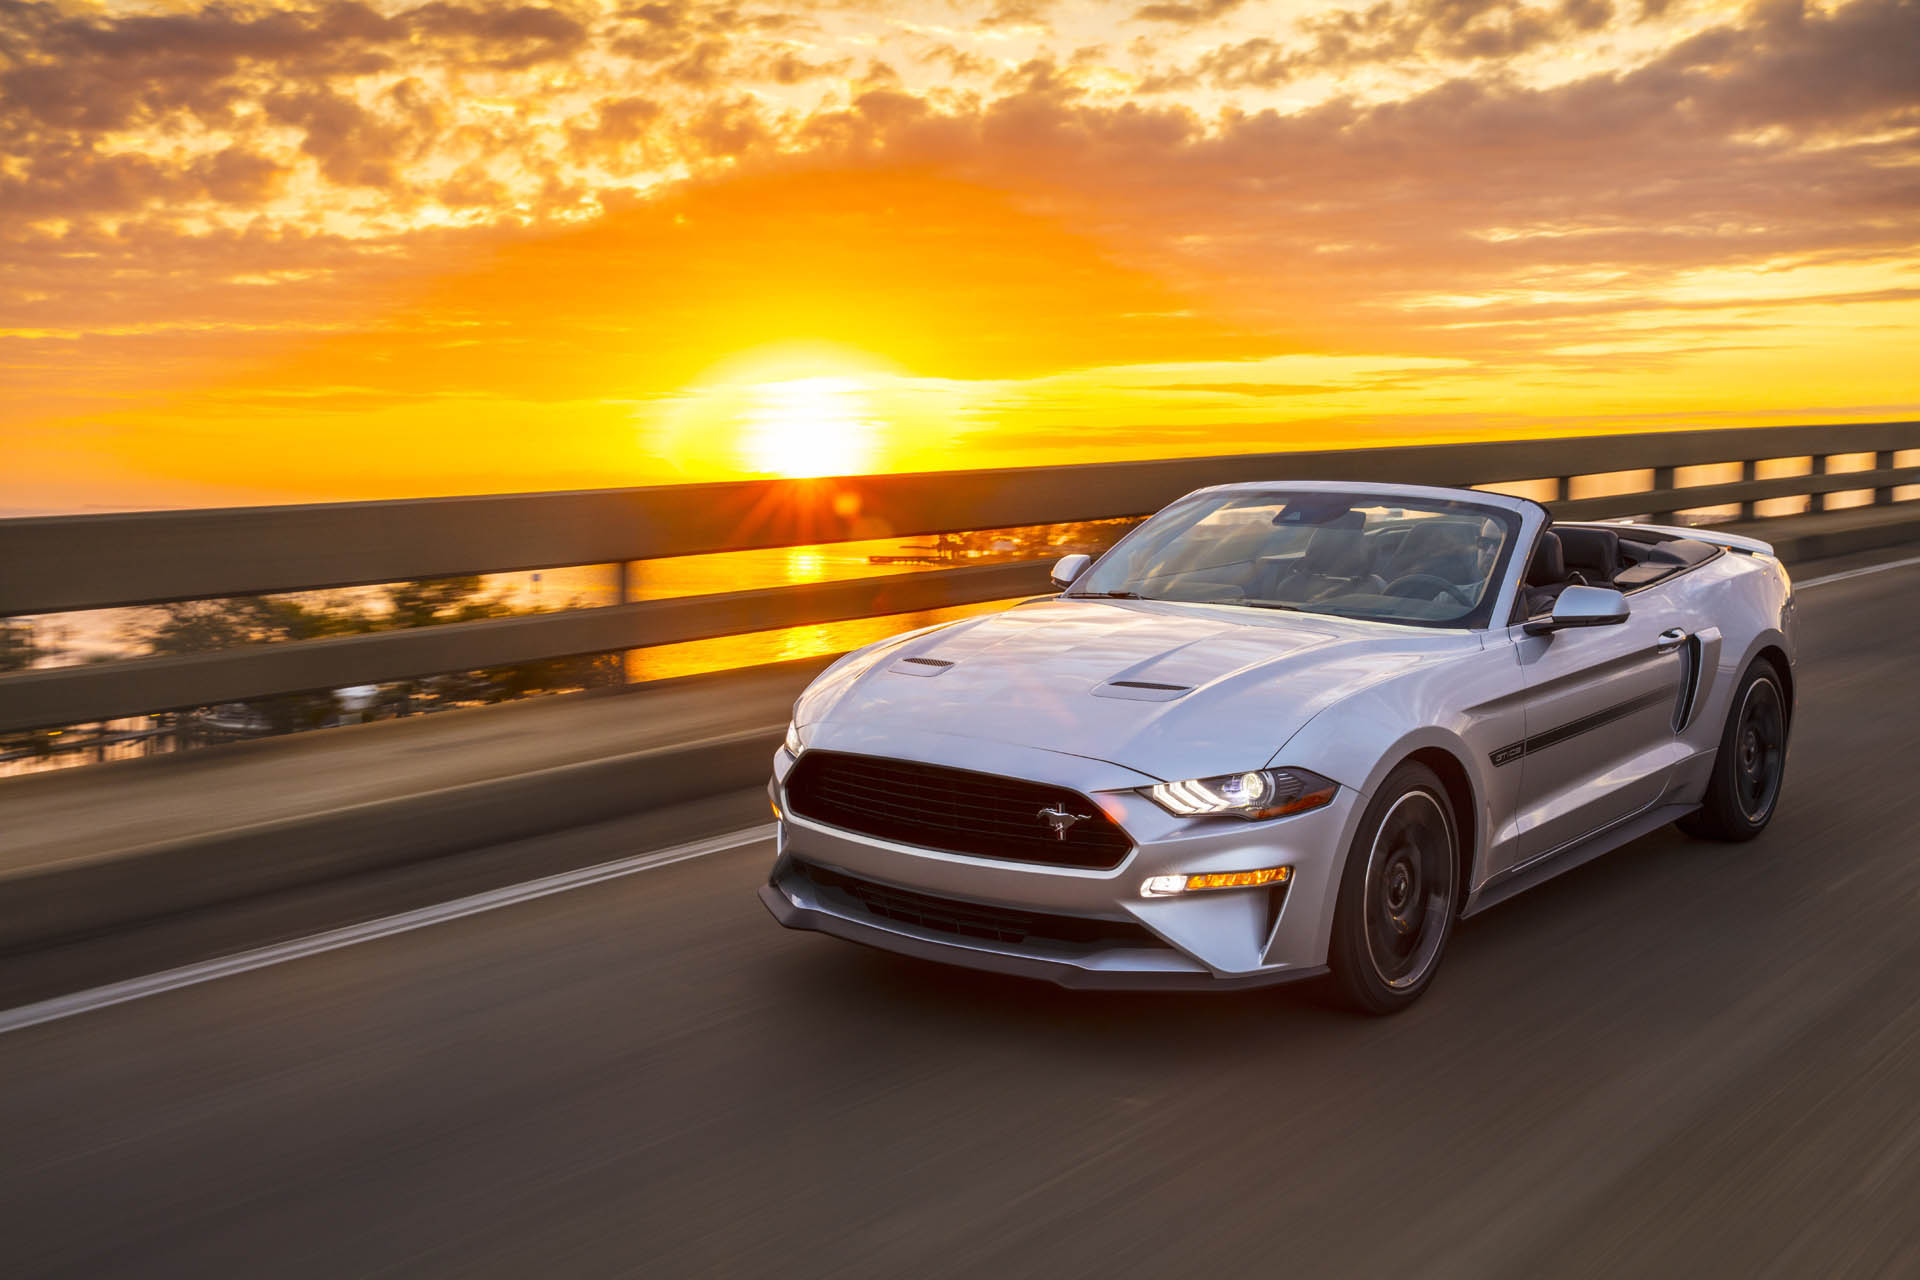 2019 Ford Mustang GT Ushers In California Special Design Package - autoevolution